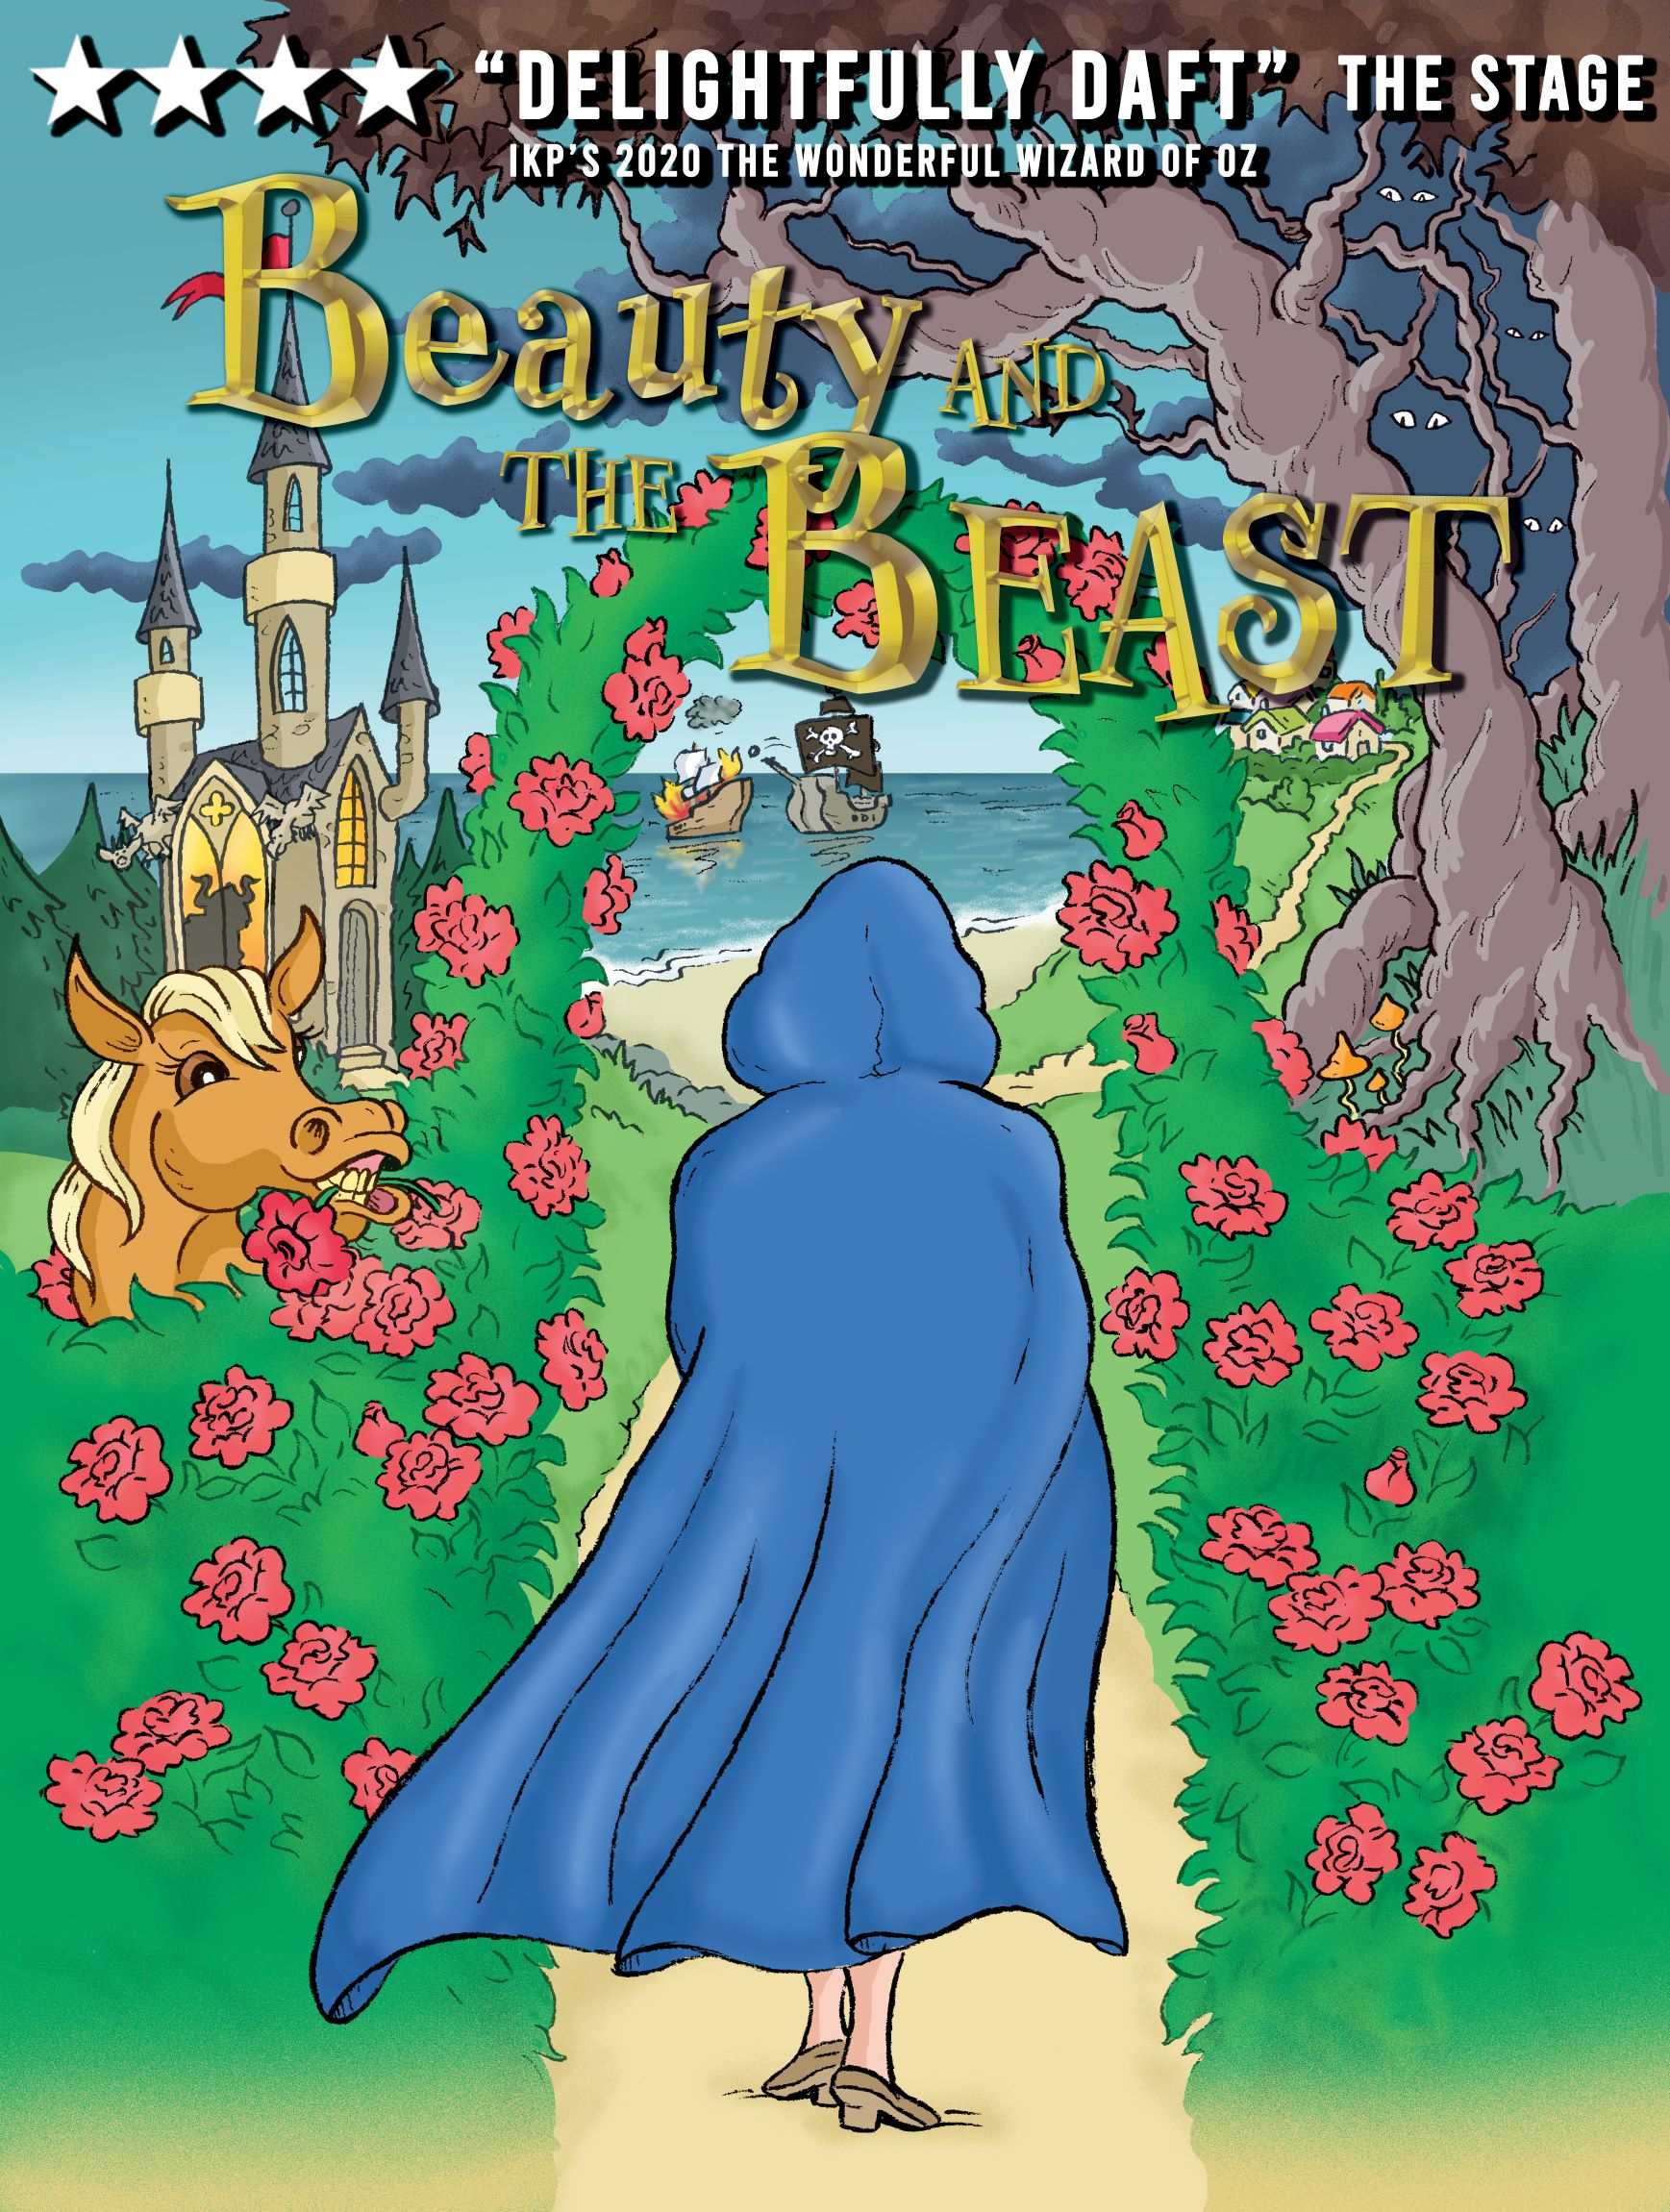 Beauty and the Beast outdoor theatre production.